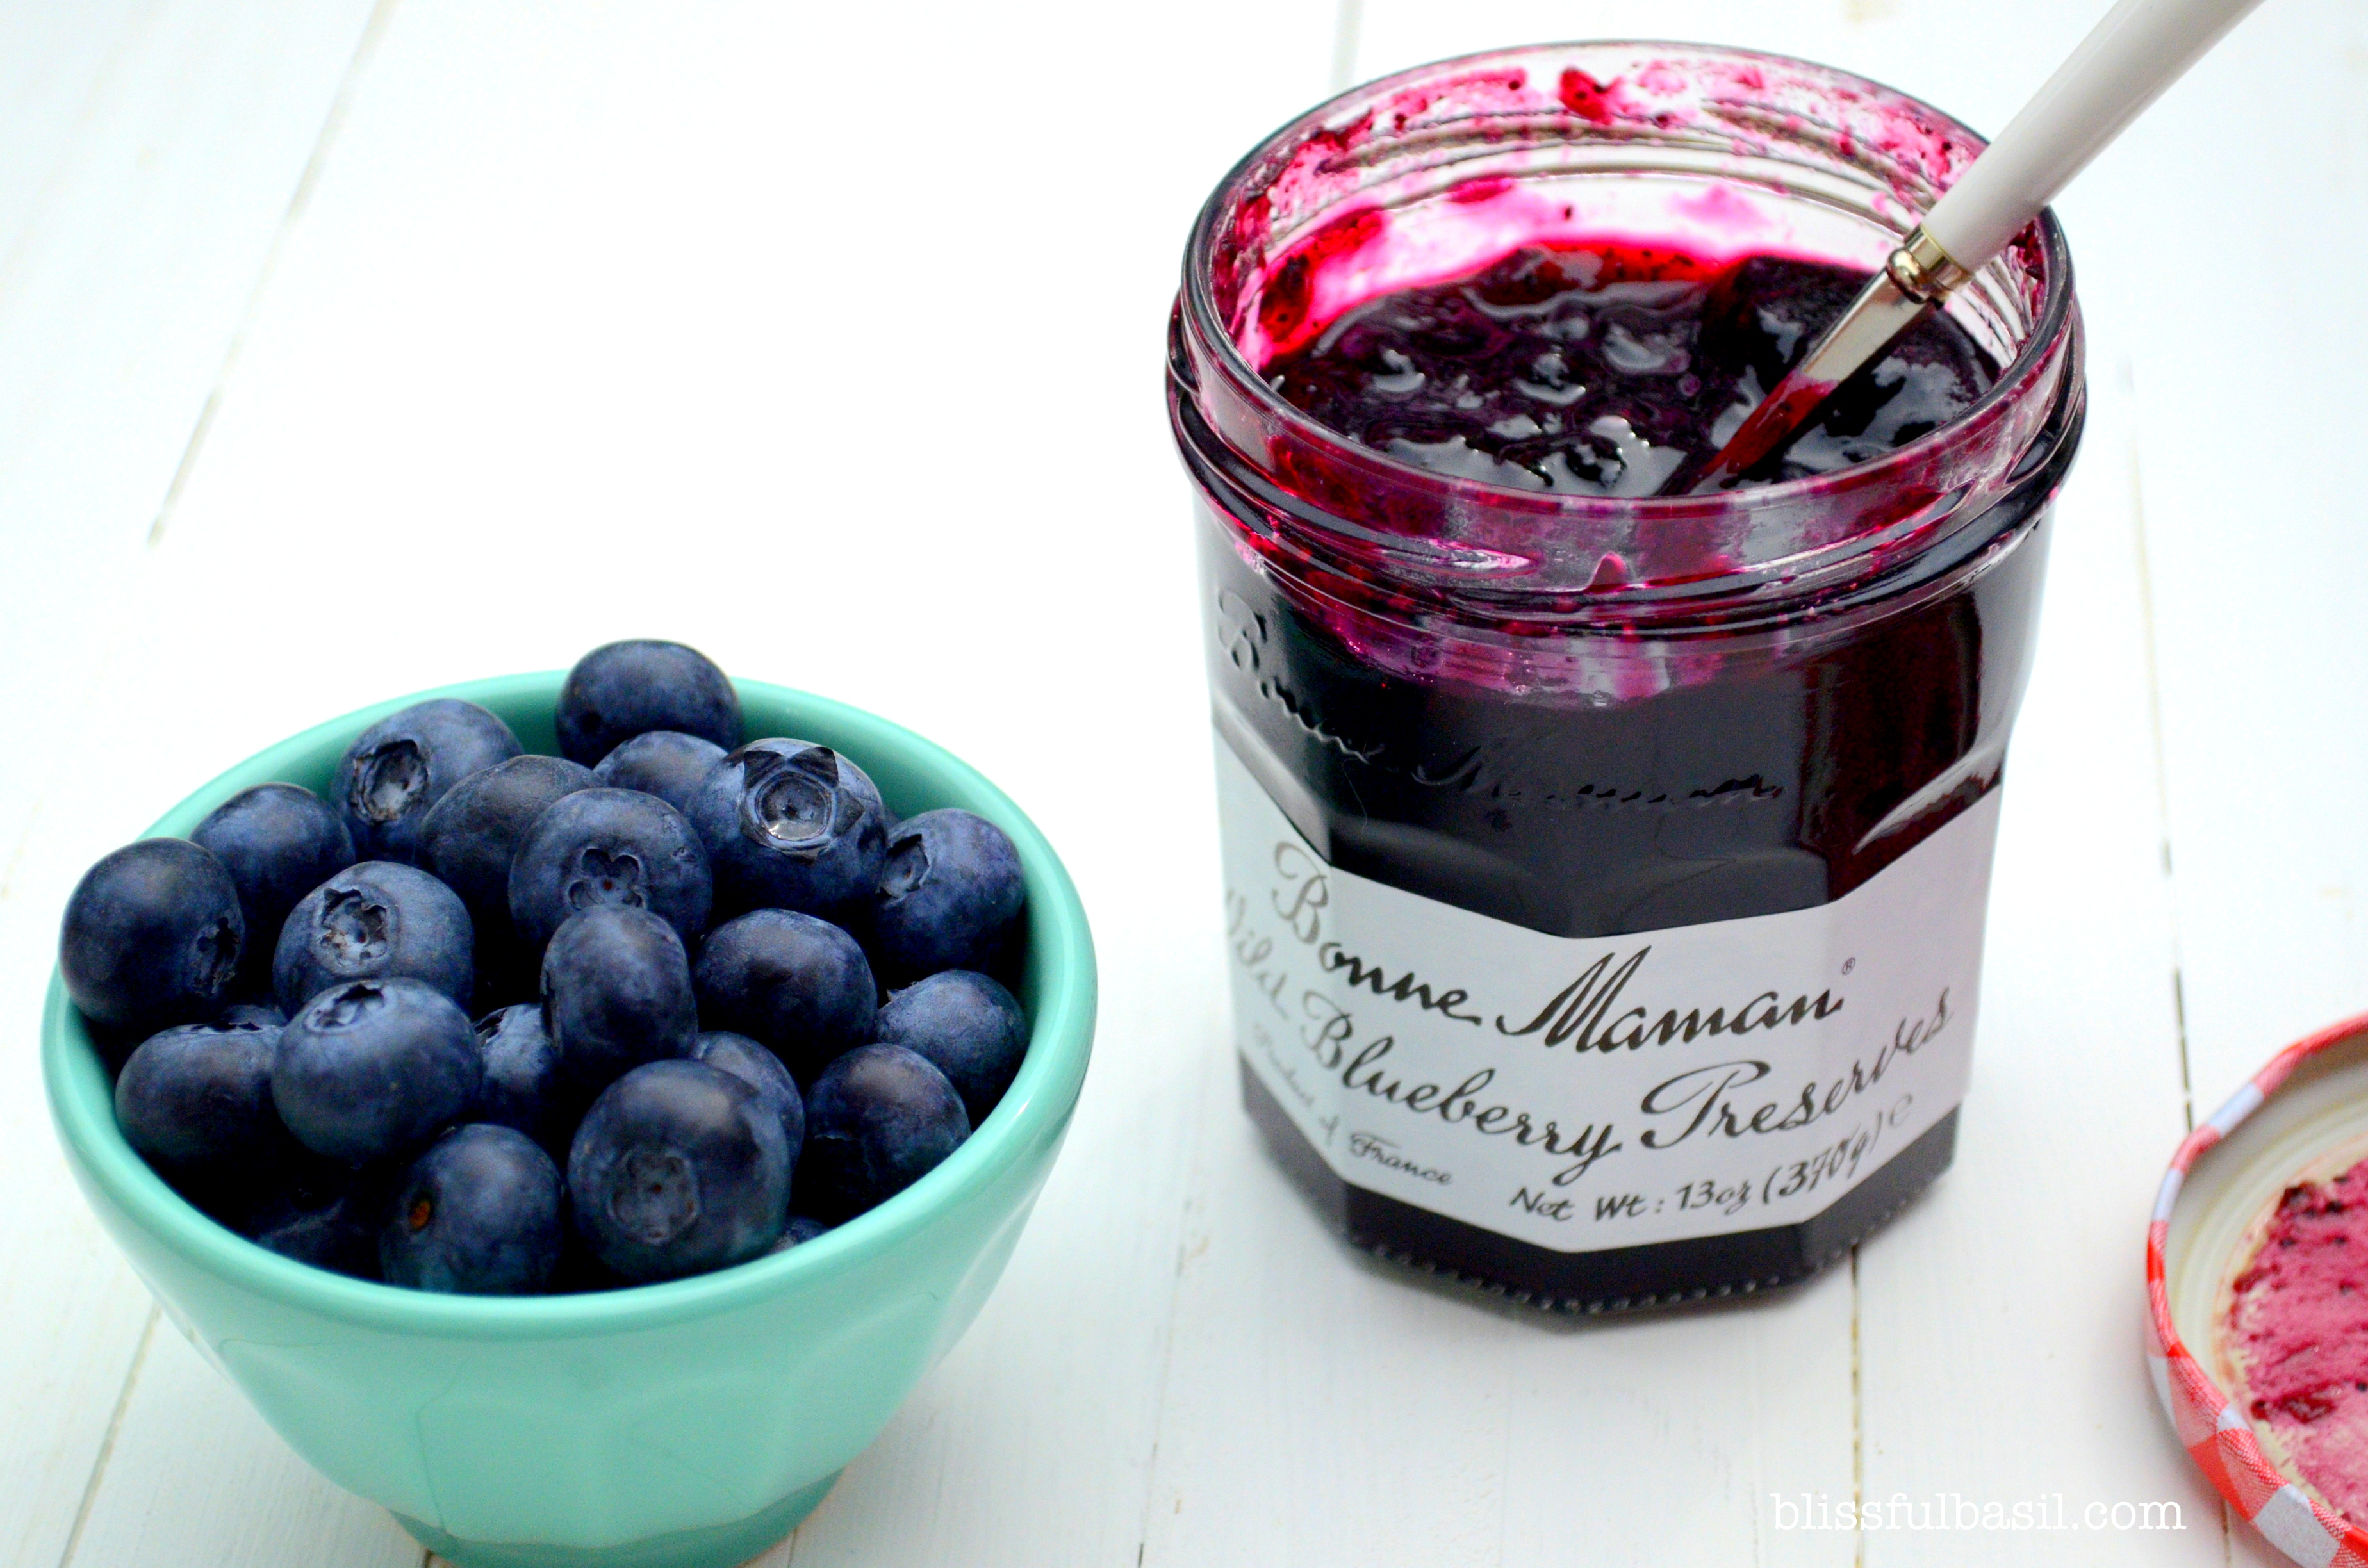 Blueberries and Blueberry Preserves